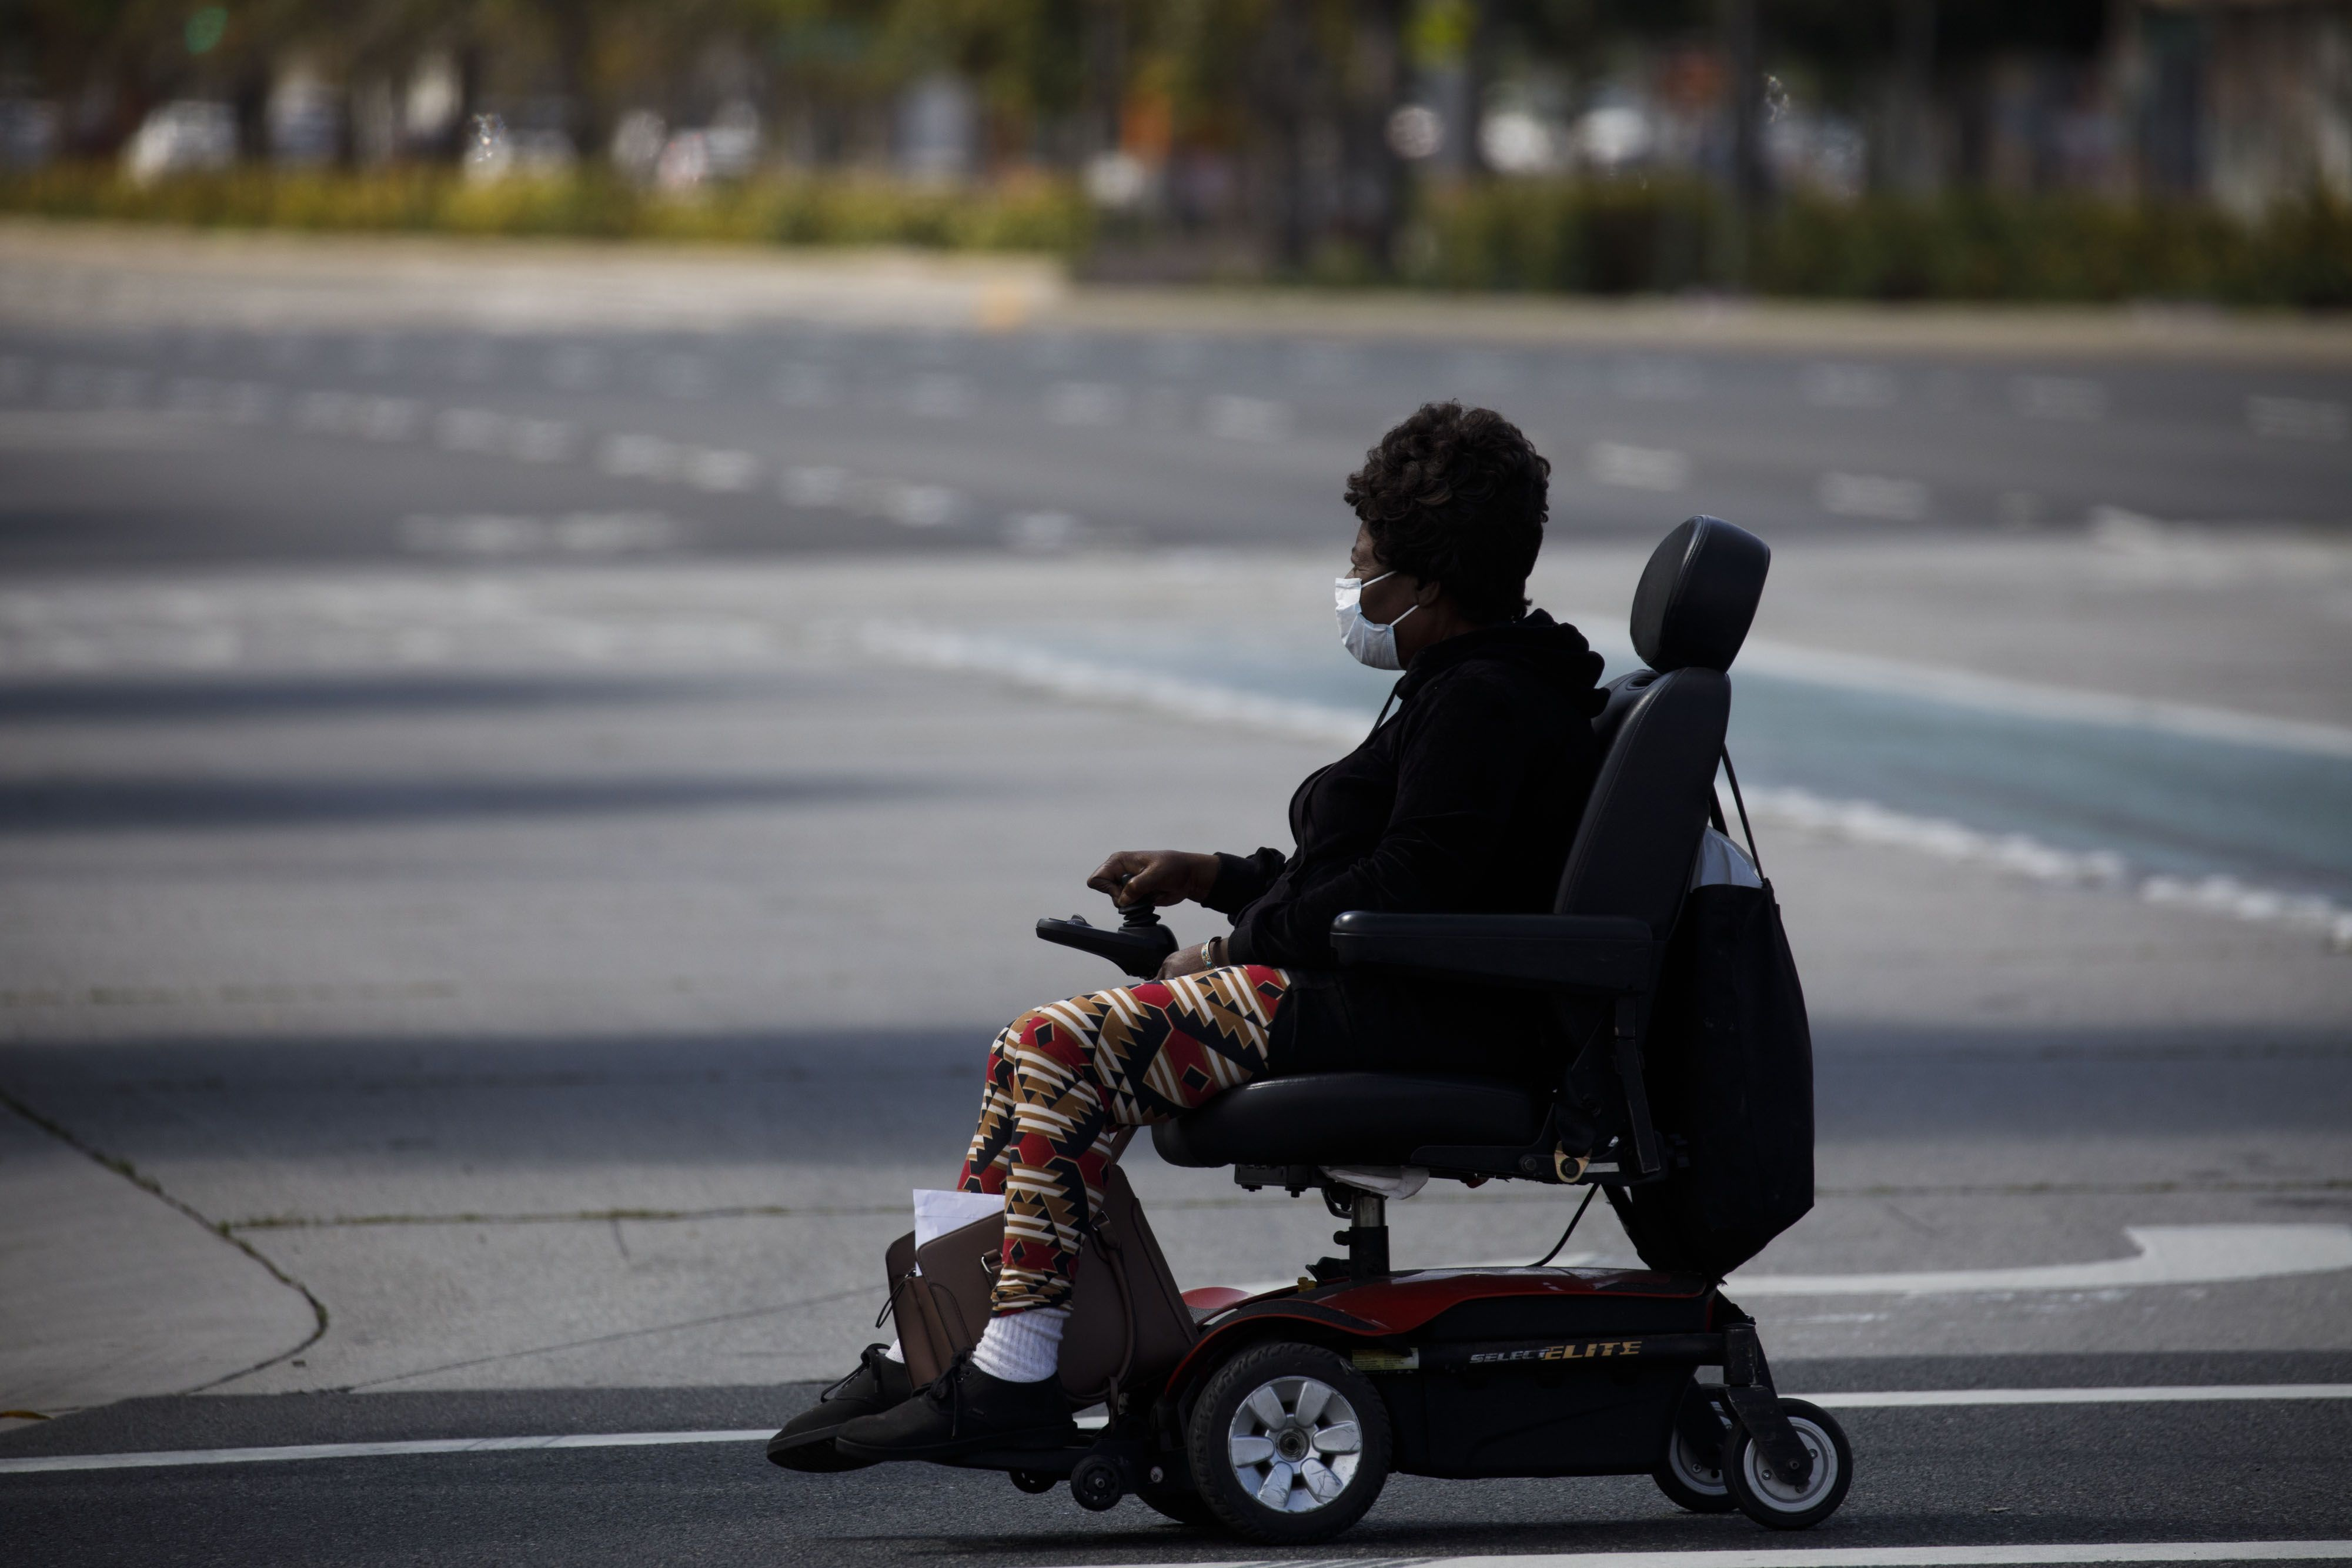 A person in an electric wheelchair crosses a street inHawthorne, California. Adding bike infrastructure is a boon for cyclists, but some street redesigns can make getting around harder fordisabled road users.